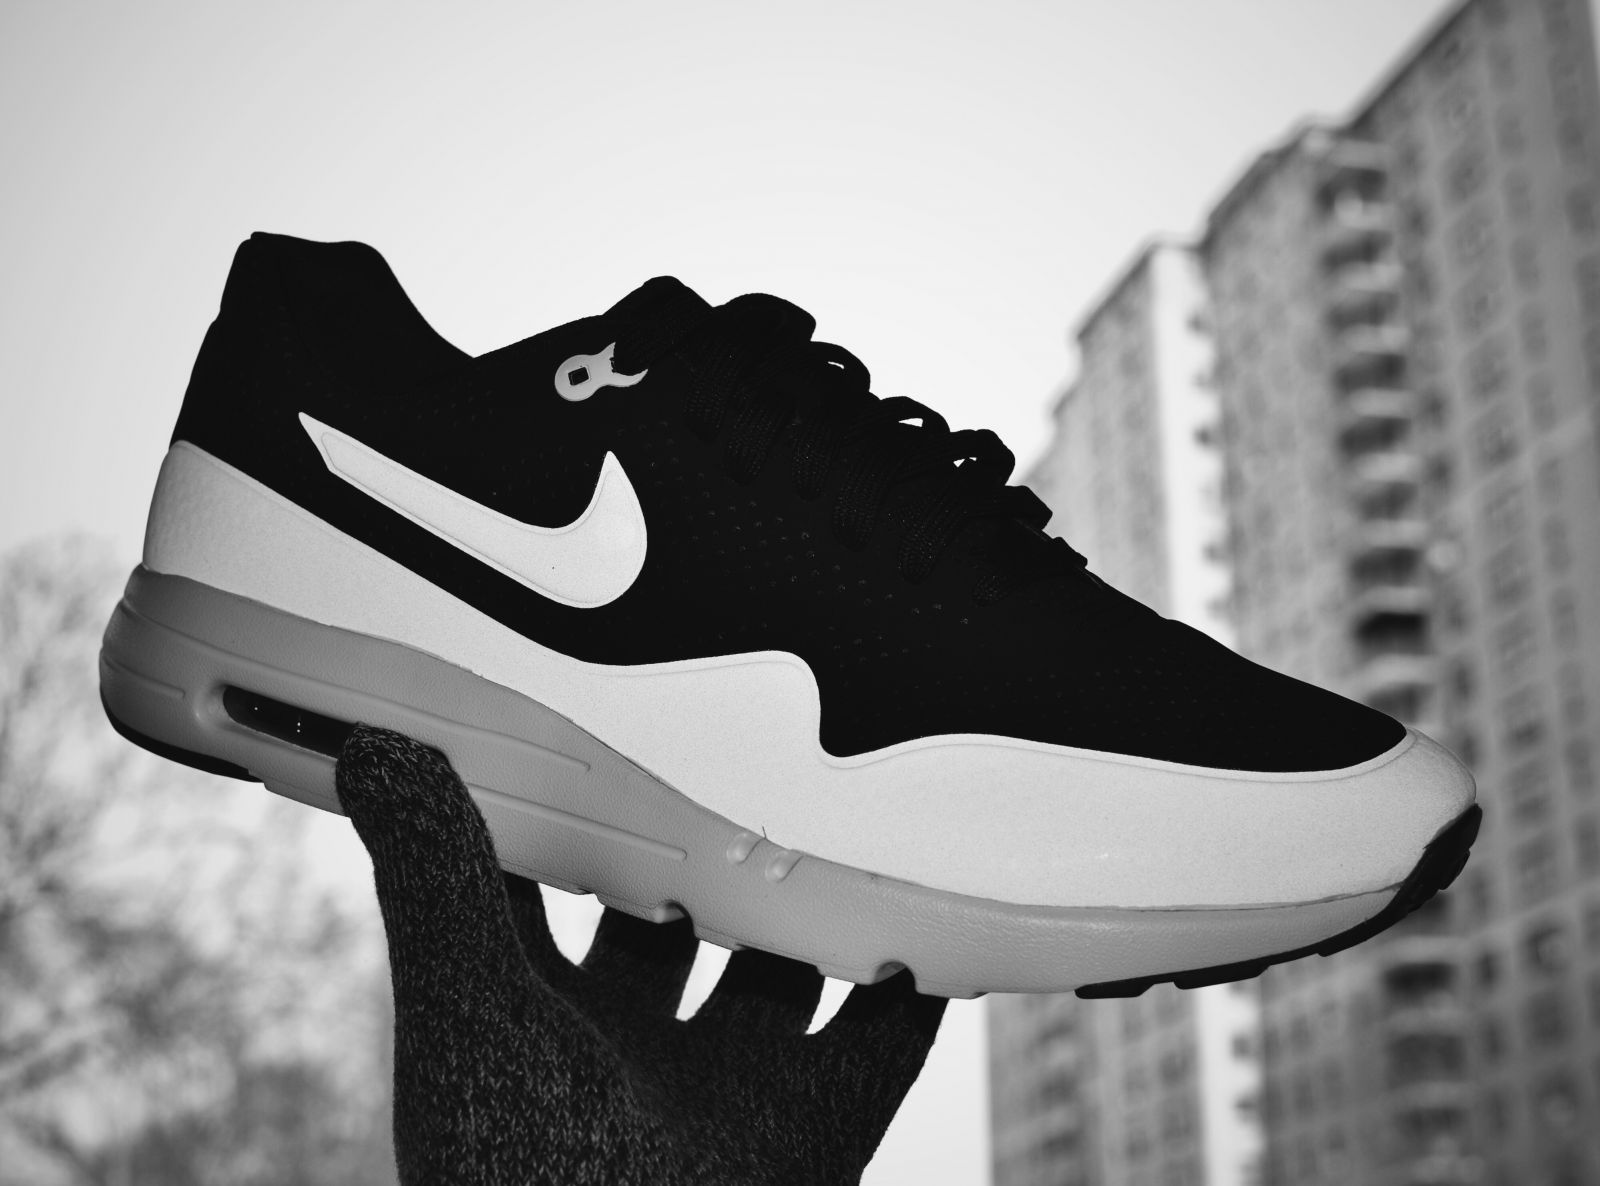 best sneakers 9b712 47361 ... ultra black white on feet Nike Gives the Air Max 90 a Utilitarian  Update SC Spotlight: Pickups of the Week 3.9.2015 | Sole Collector . ...